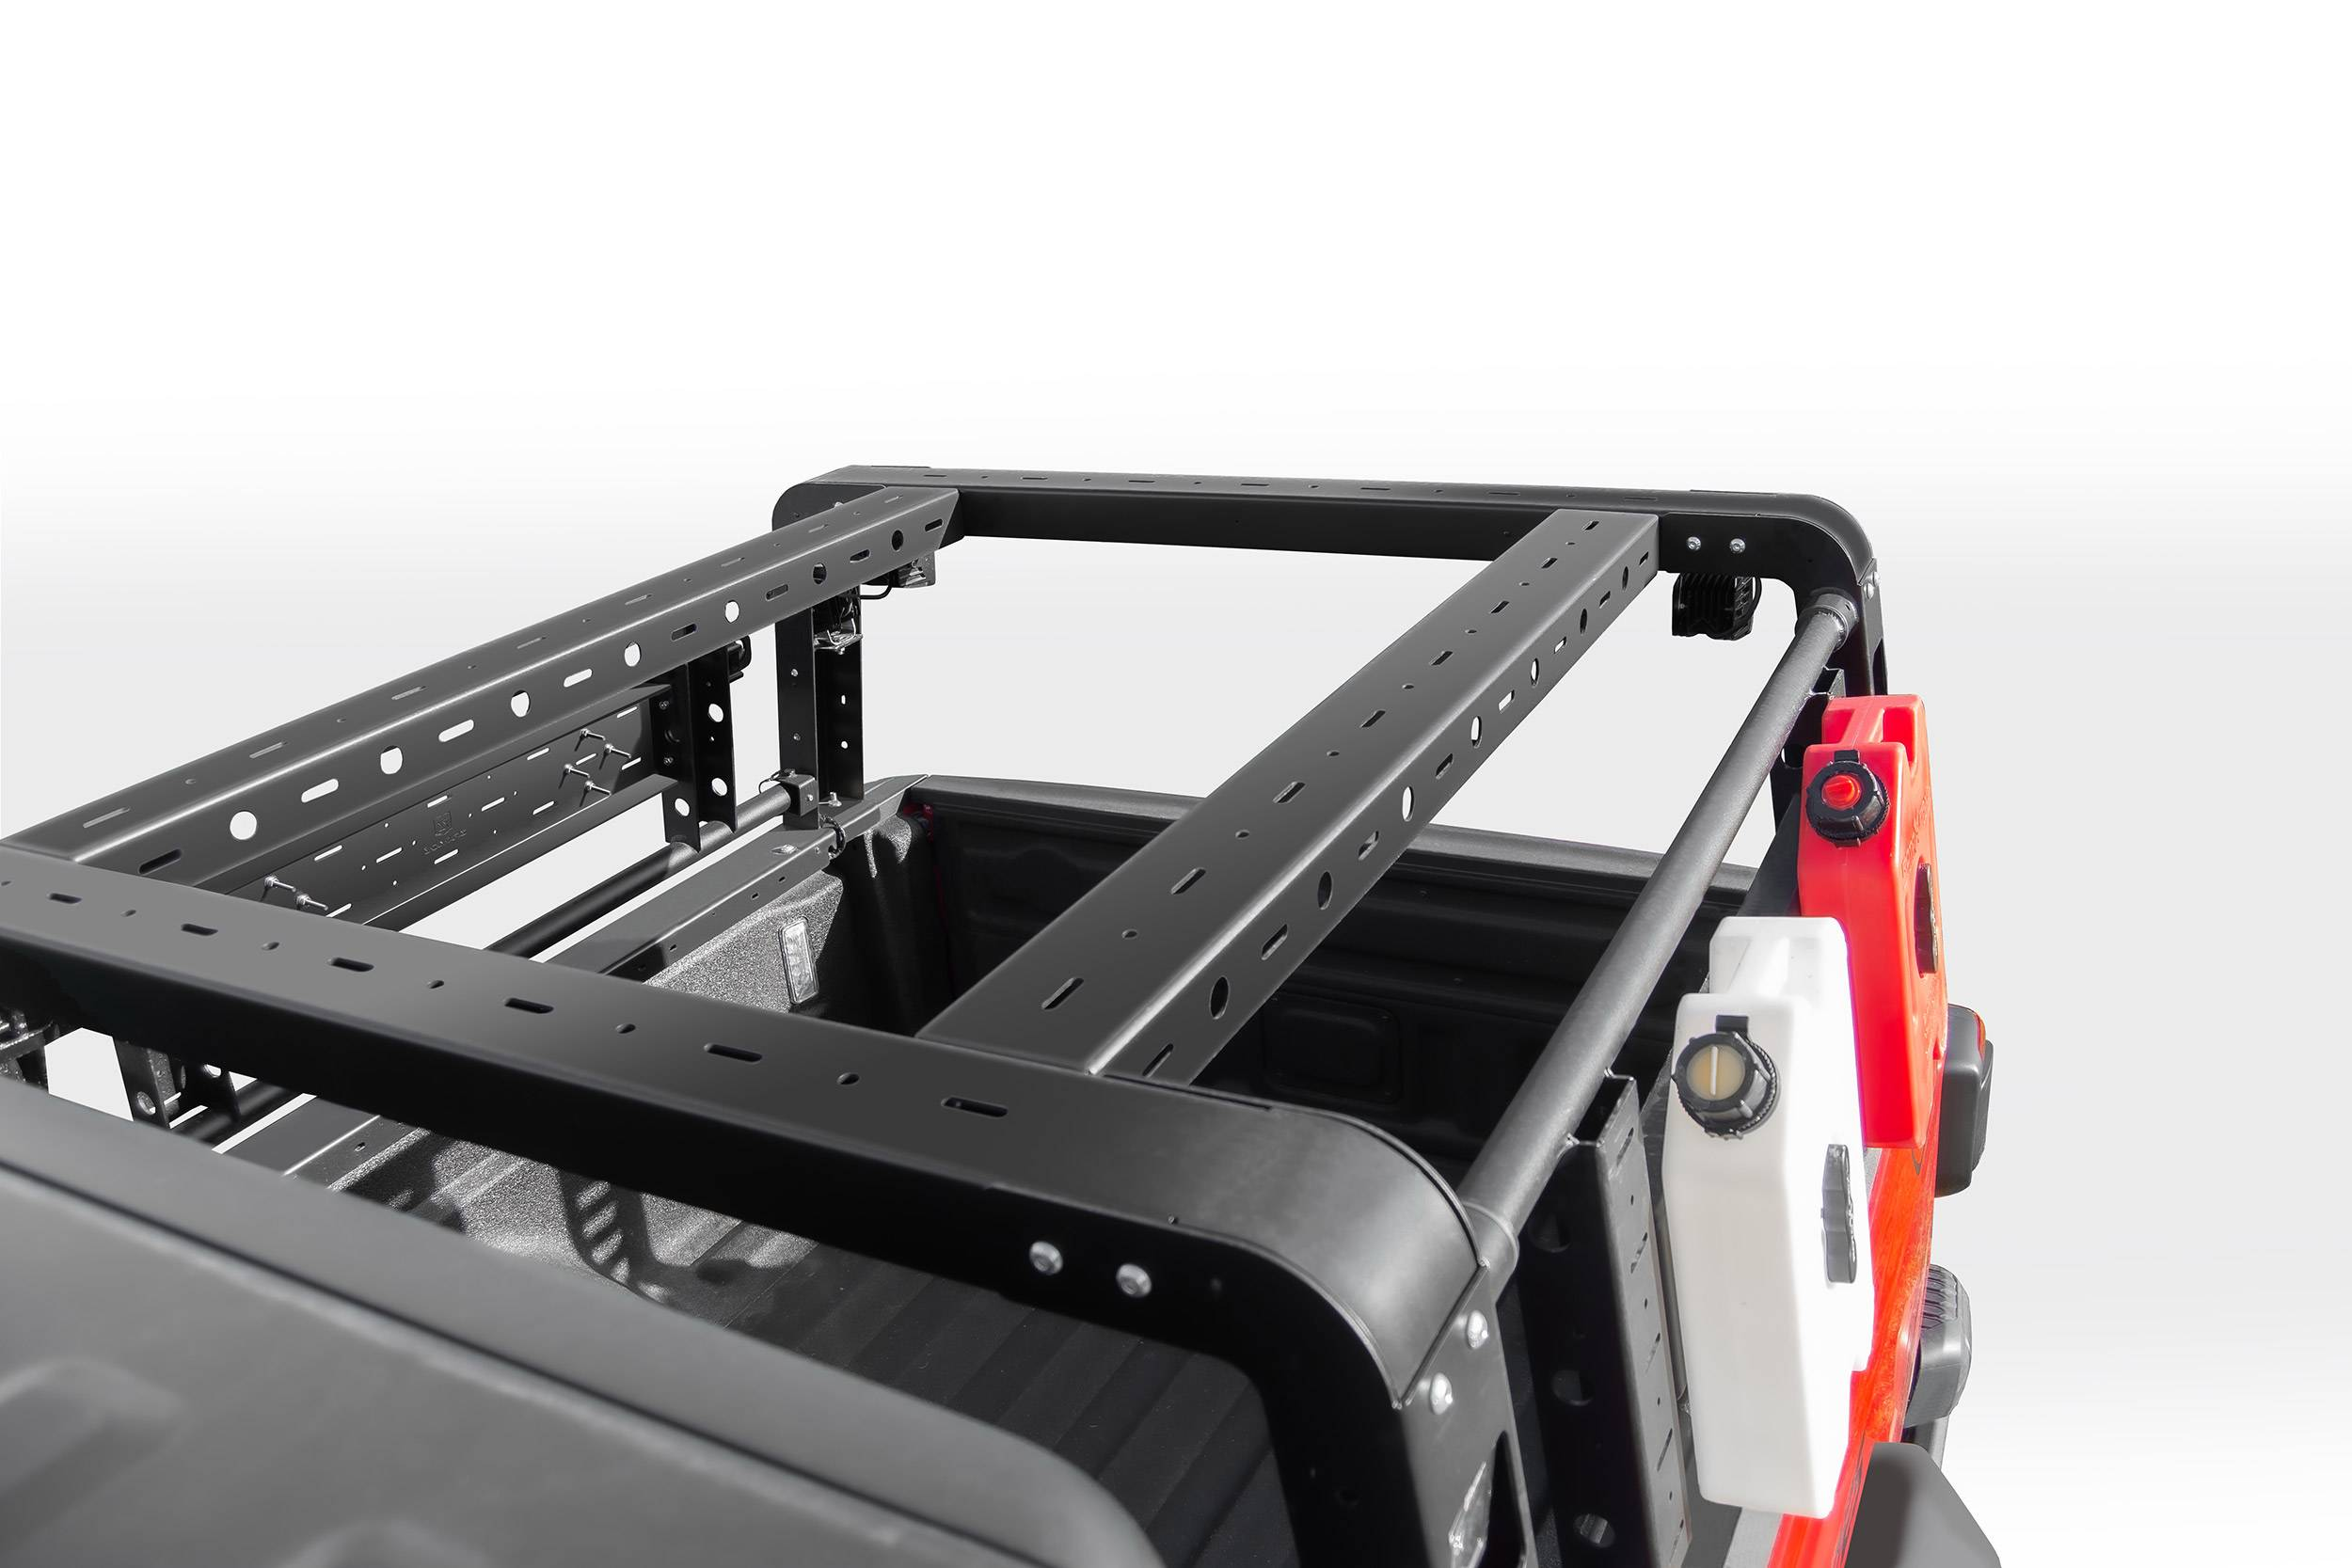 2019 2021 Jeep Gladiator Overland Access Rack With Two Lifting Side Gates Without Factory Trail Rail Cargo System Pn Z834101